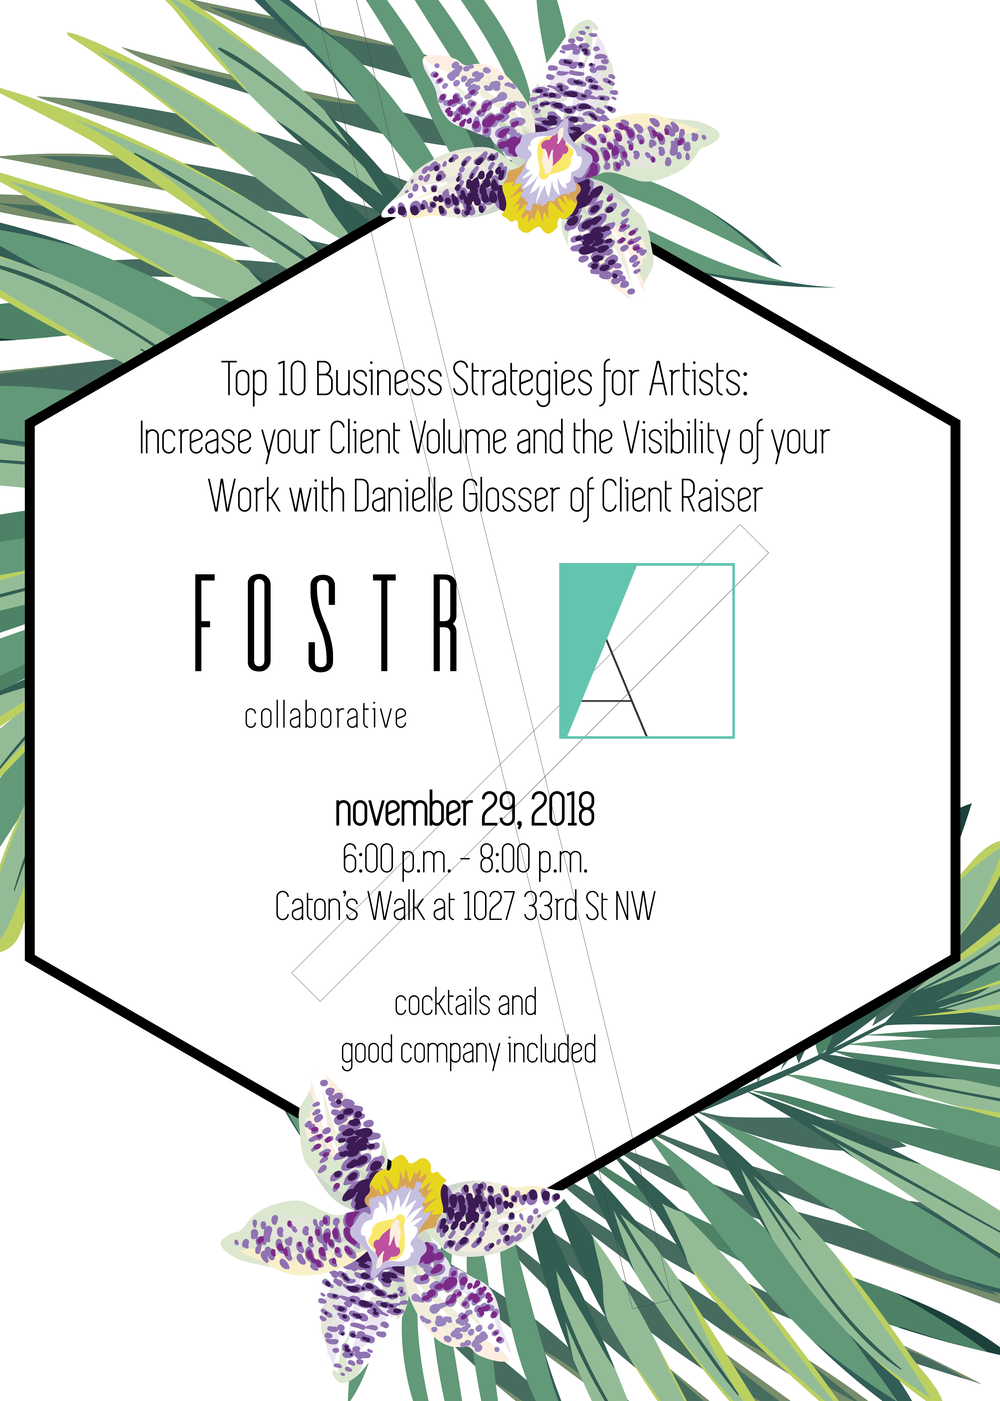 fostr_workshop_graphics artsee 20181129-01.png